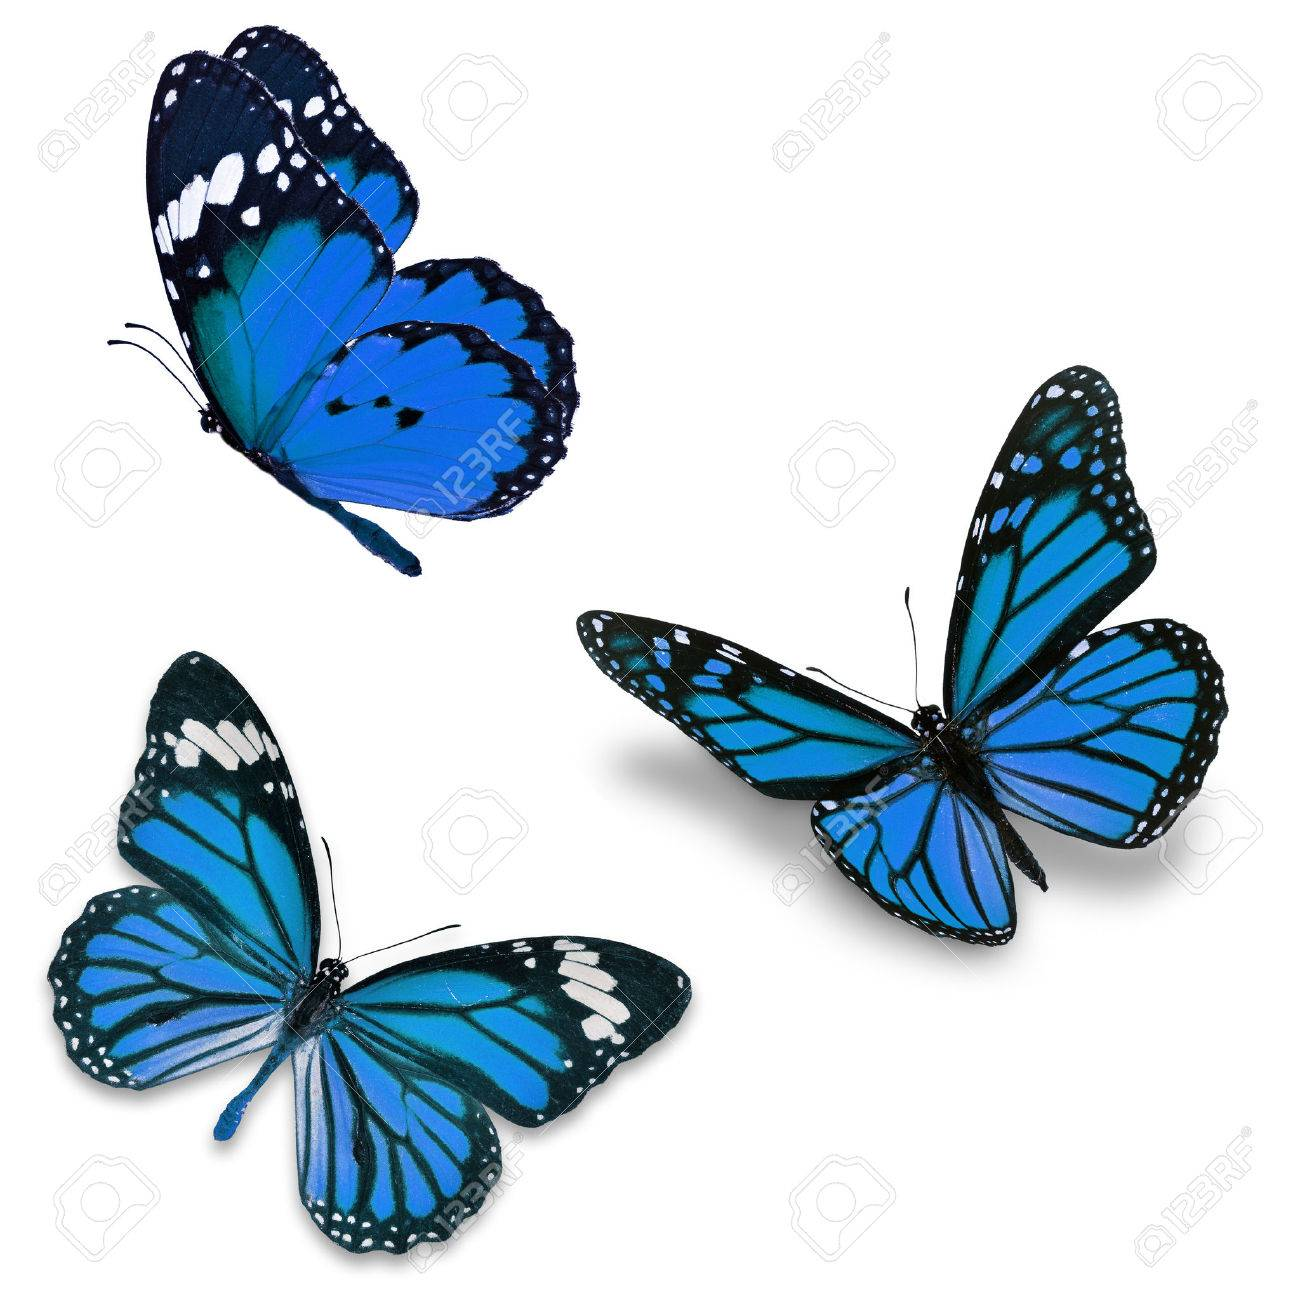 Three blue butterfly, isolated on white background - 39084932